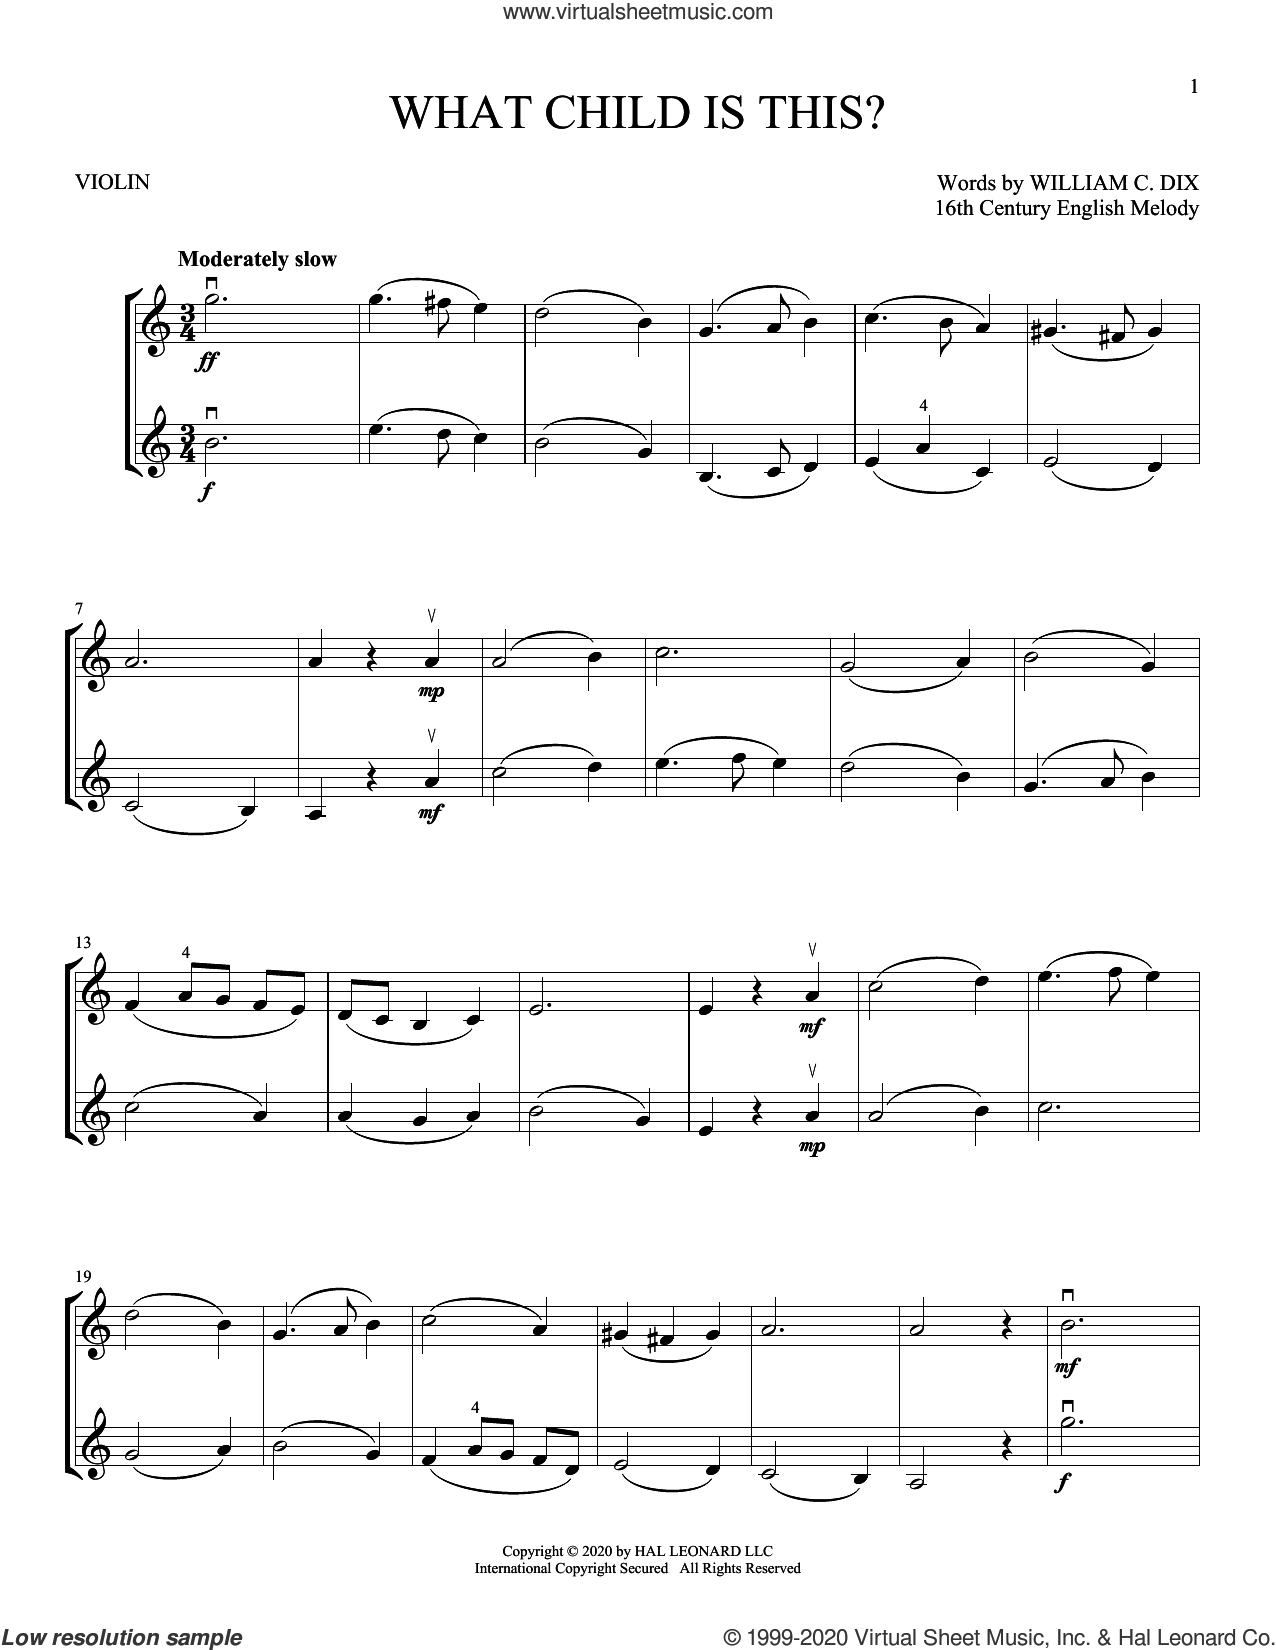 What Child Is This? sheet music for two violins (duets, violin duets) by William Chatterton Dix and Miscellaneous, intermediate skill level